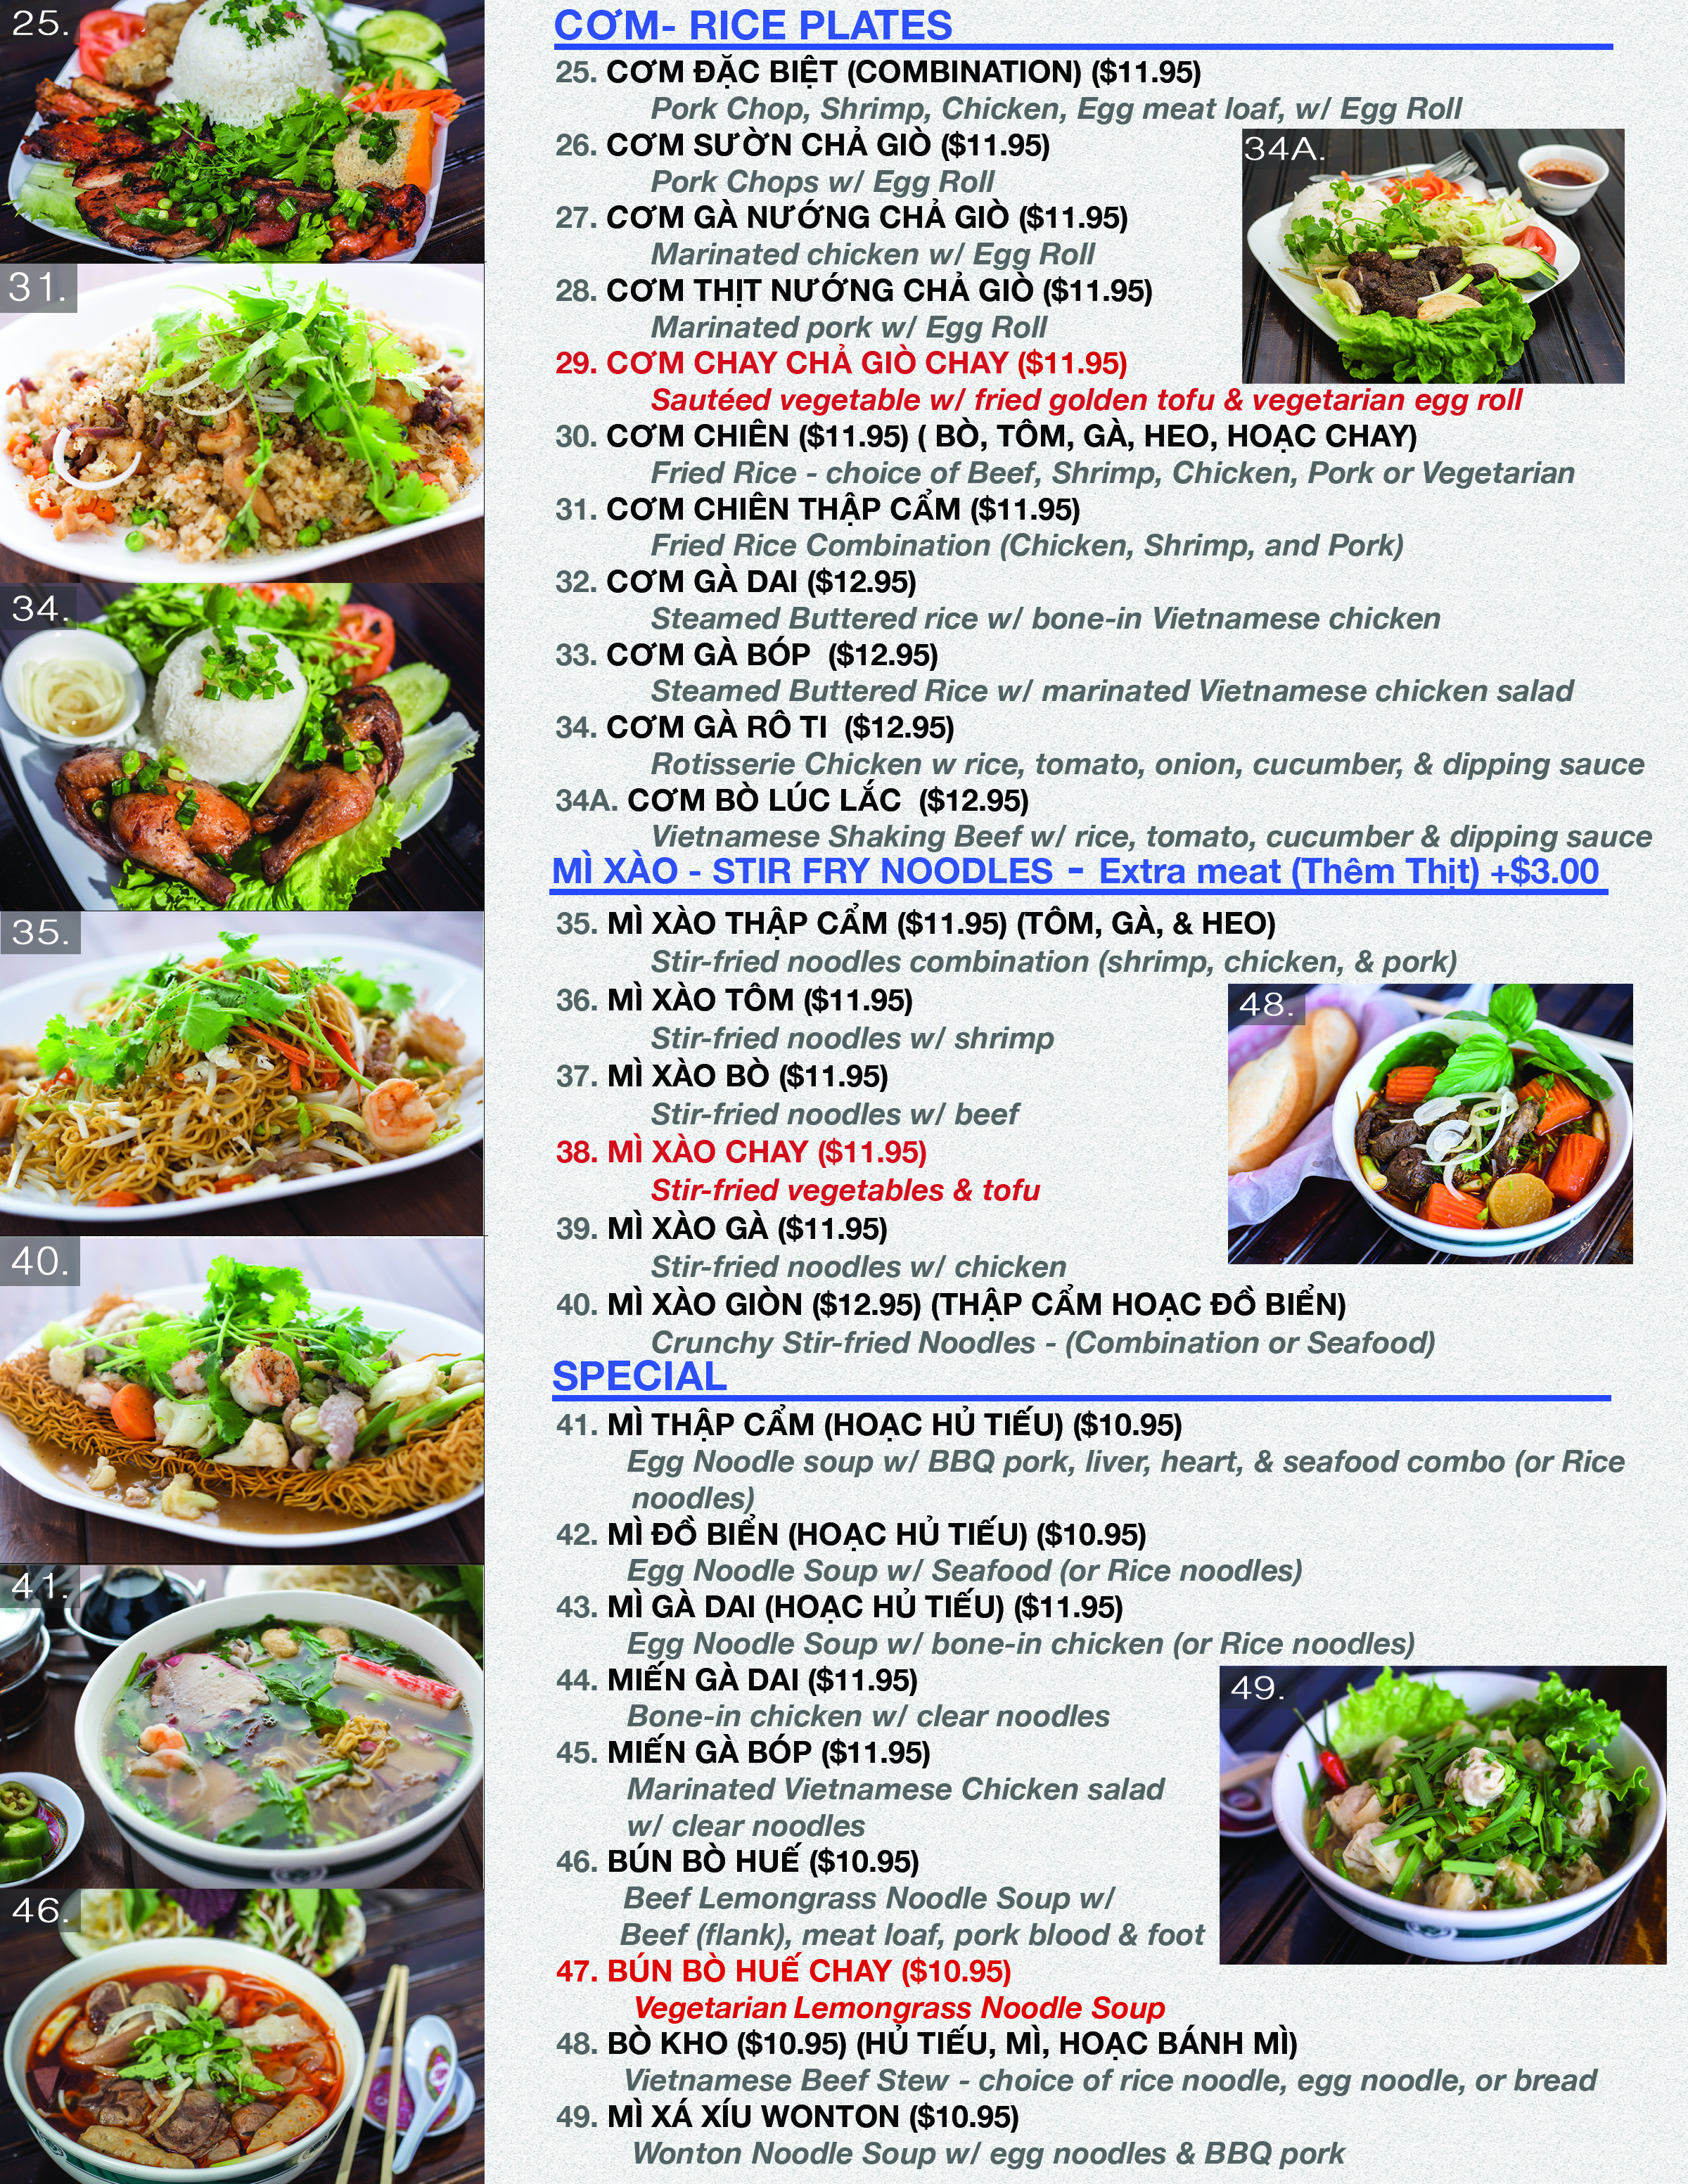 Pho Duy Restaurant Menu Page 3 6/4/17